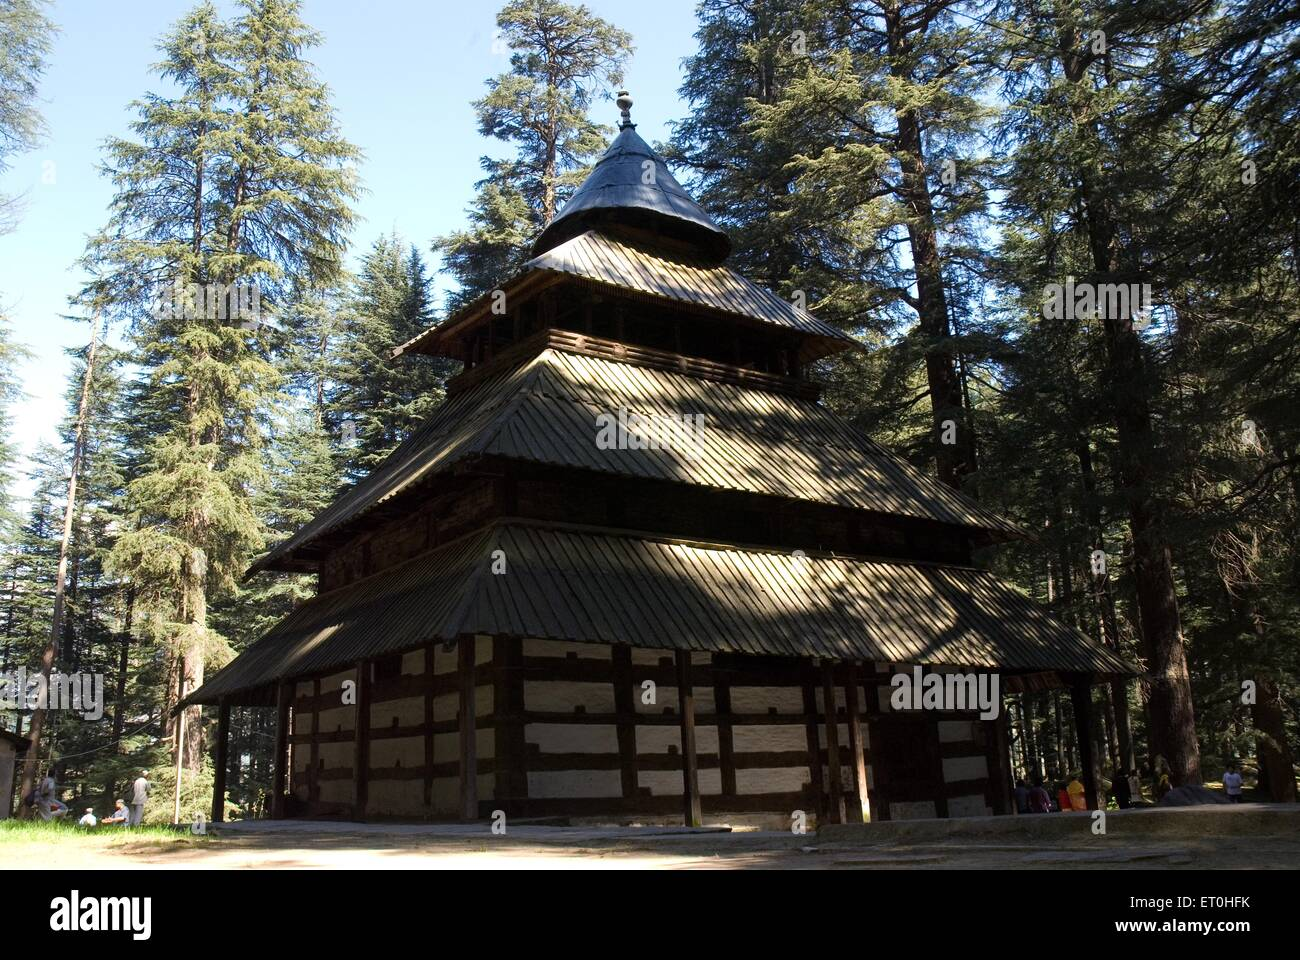 Hadimba temple at manali ; Himachal Pradesh ; India - Stock Image